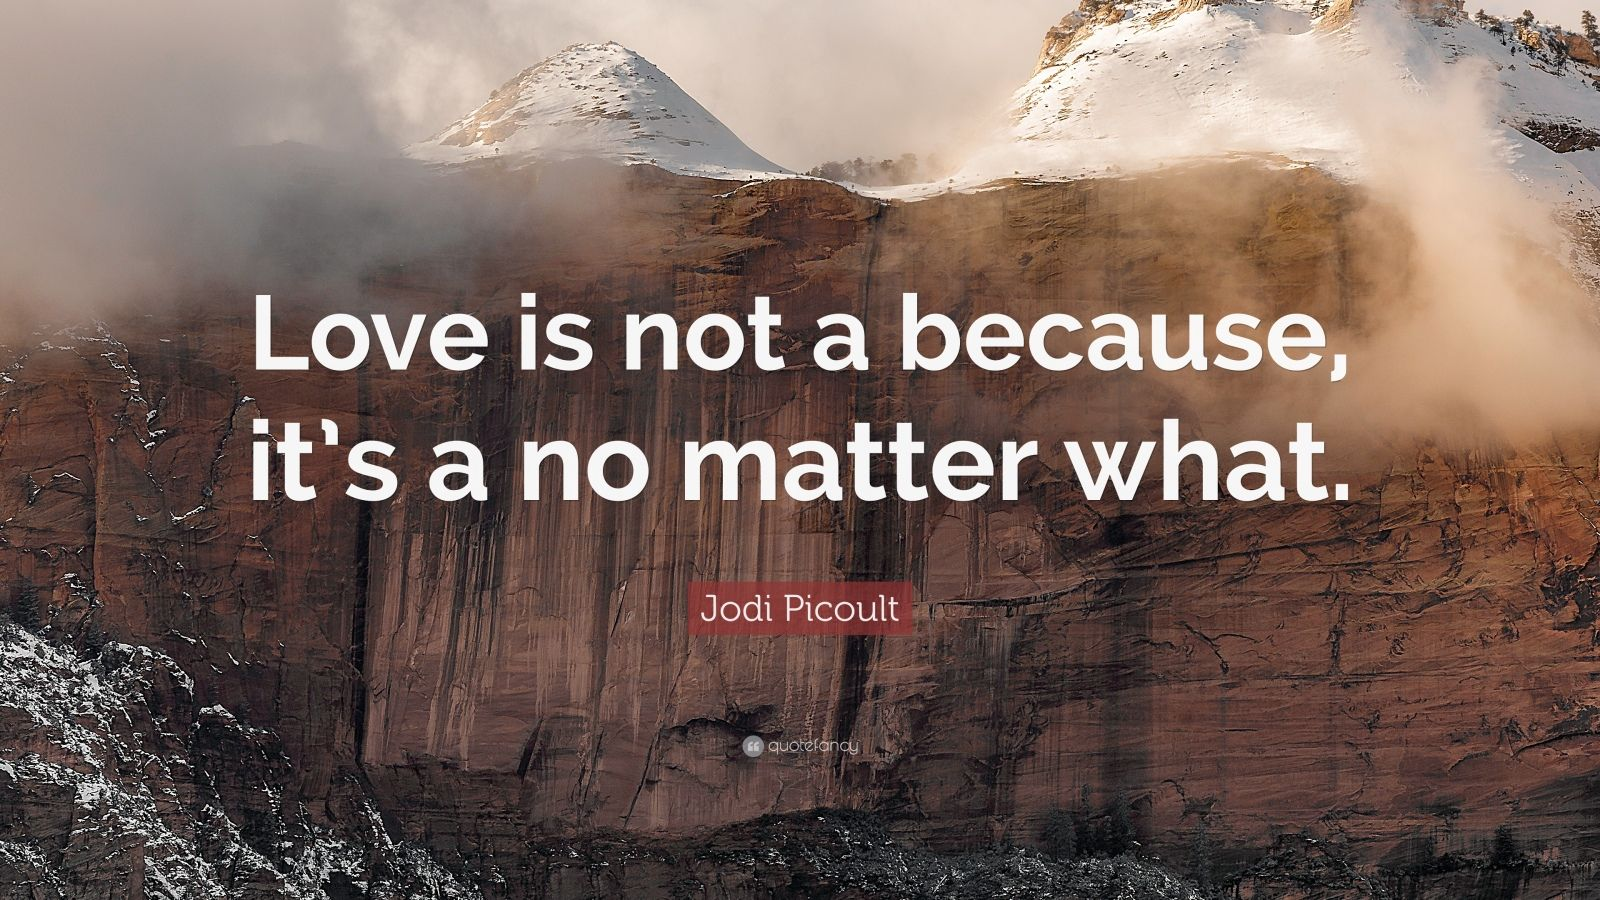 """Jodi Picoult Quote: """"Love is not a because, it's a no matter what."""""""